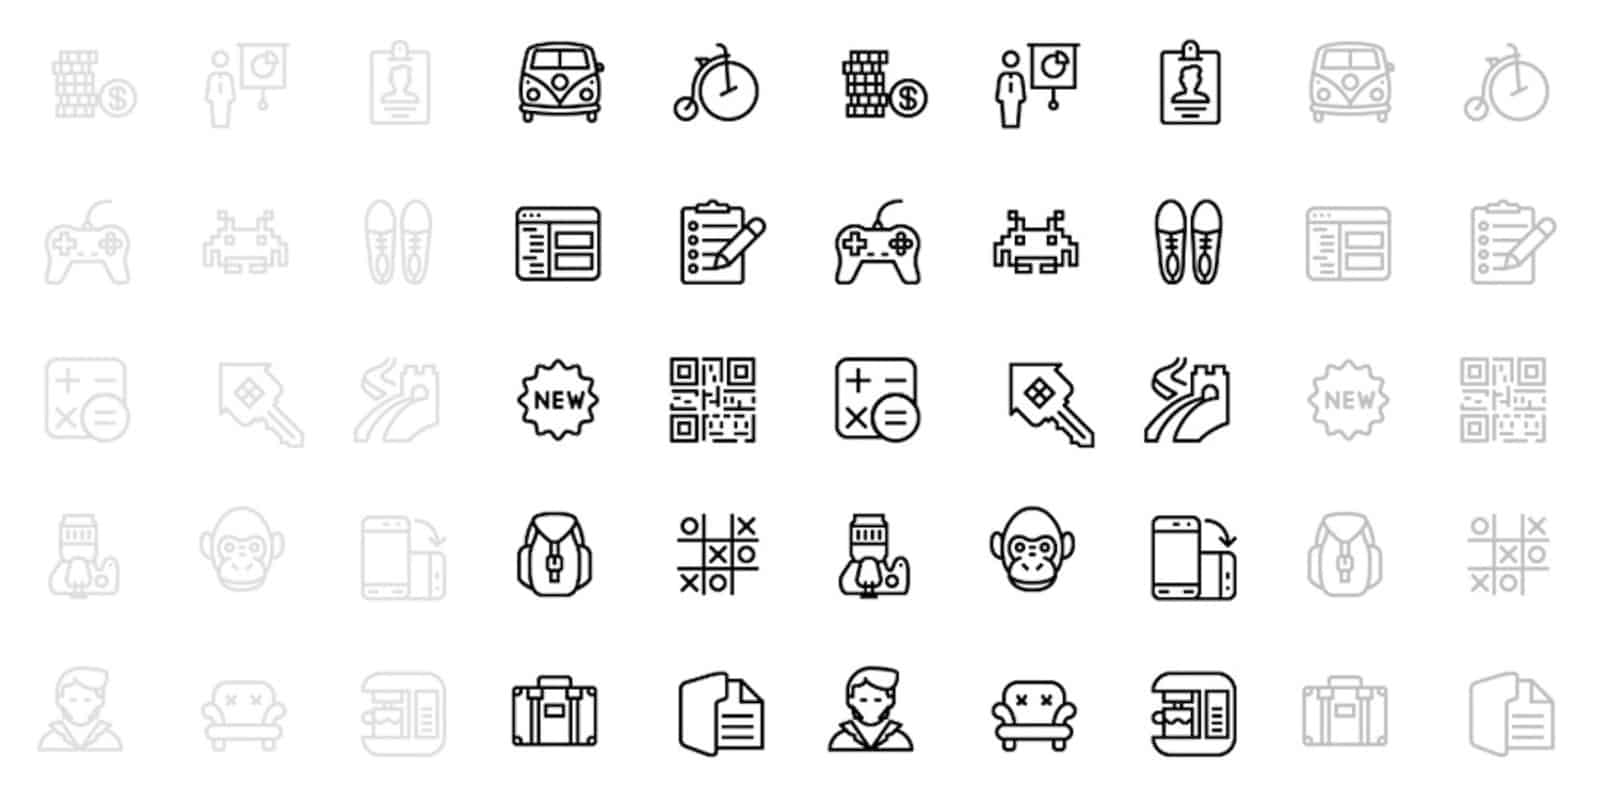 This membership offers lifetime access to a massive library of top-shelf icon assets, along with all future updates.